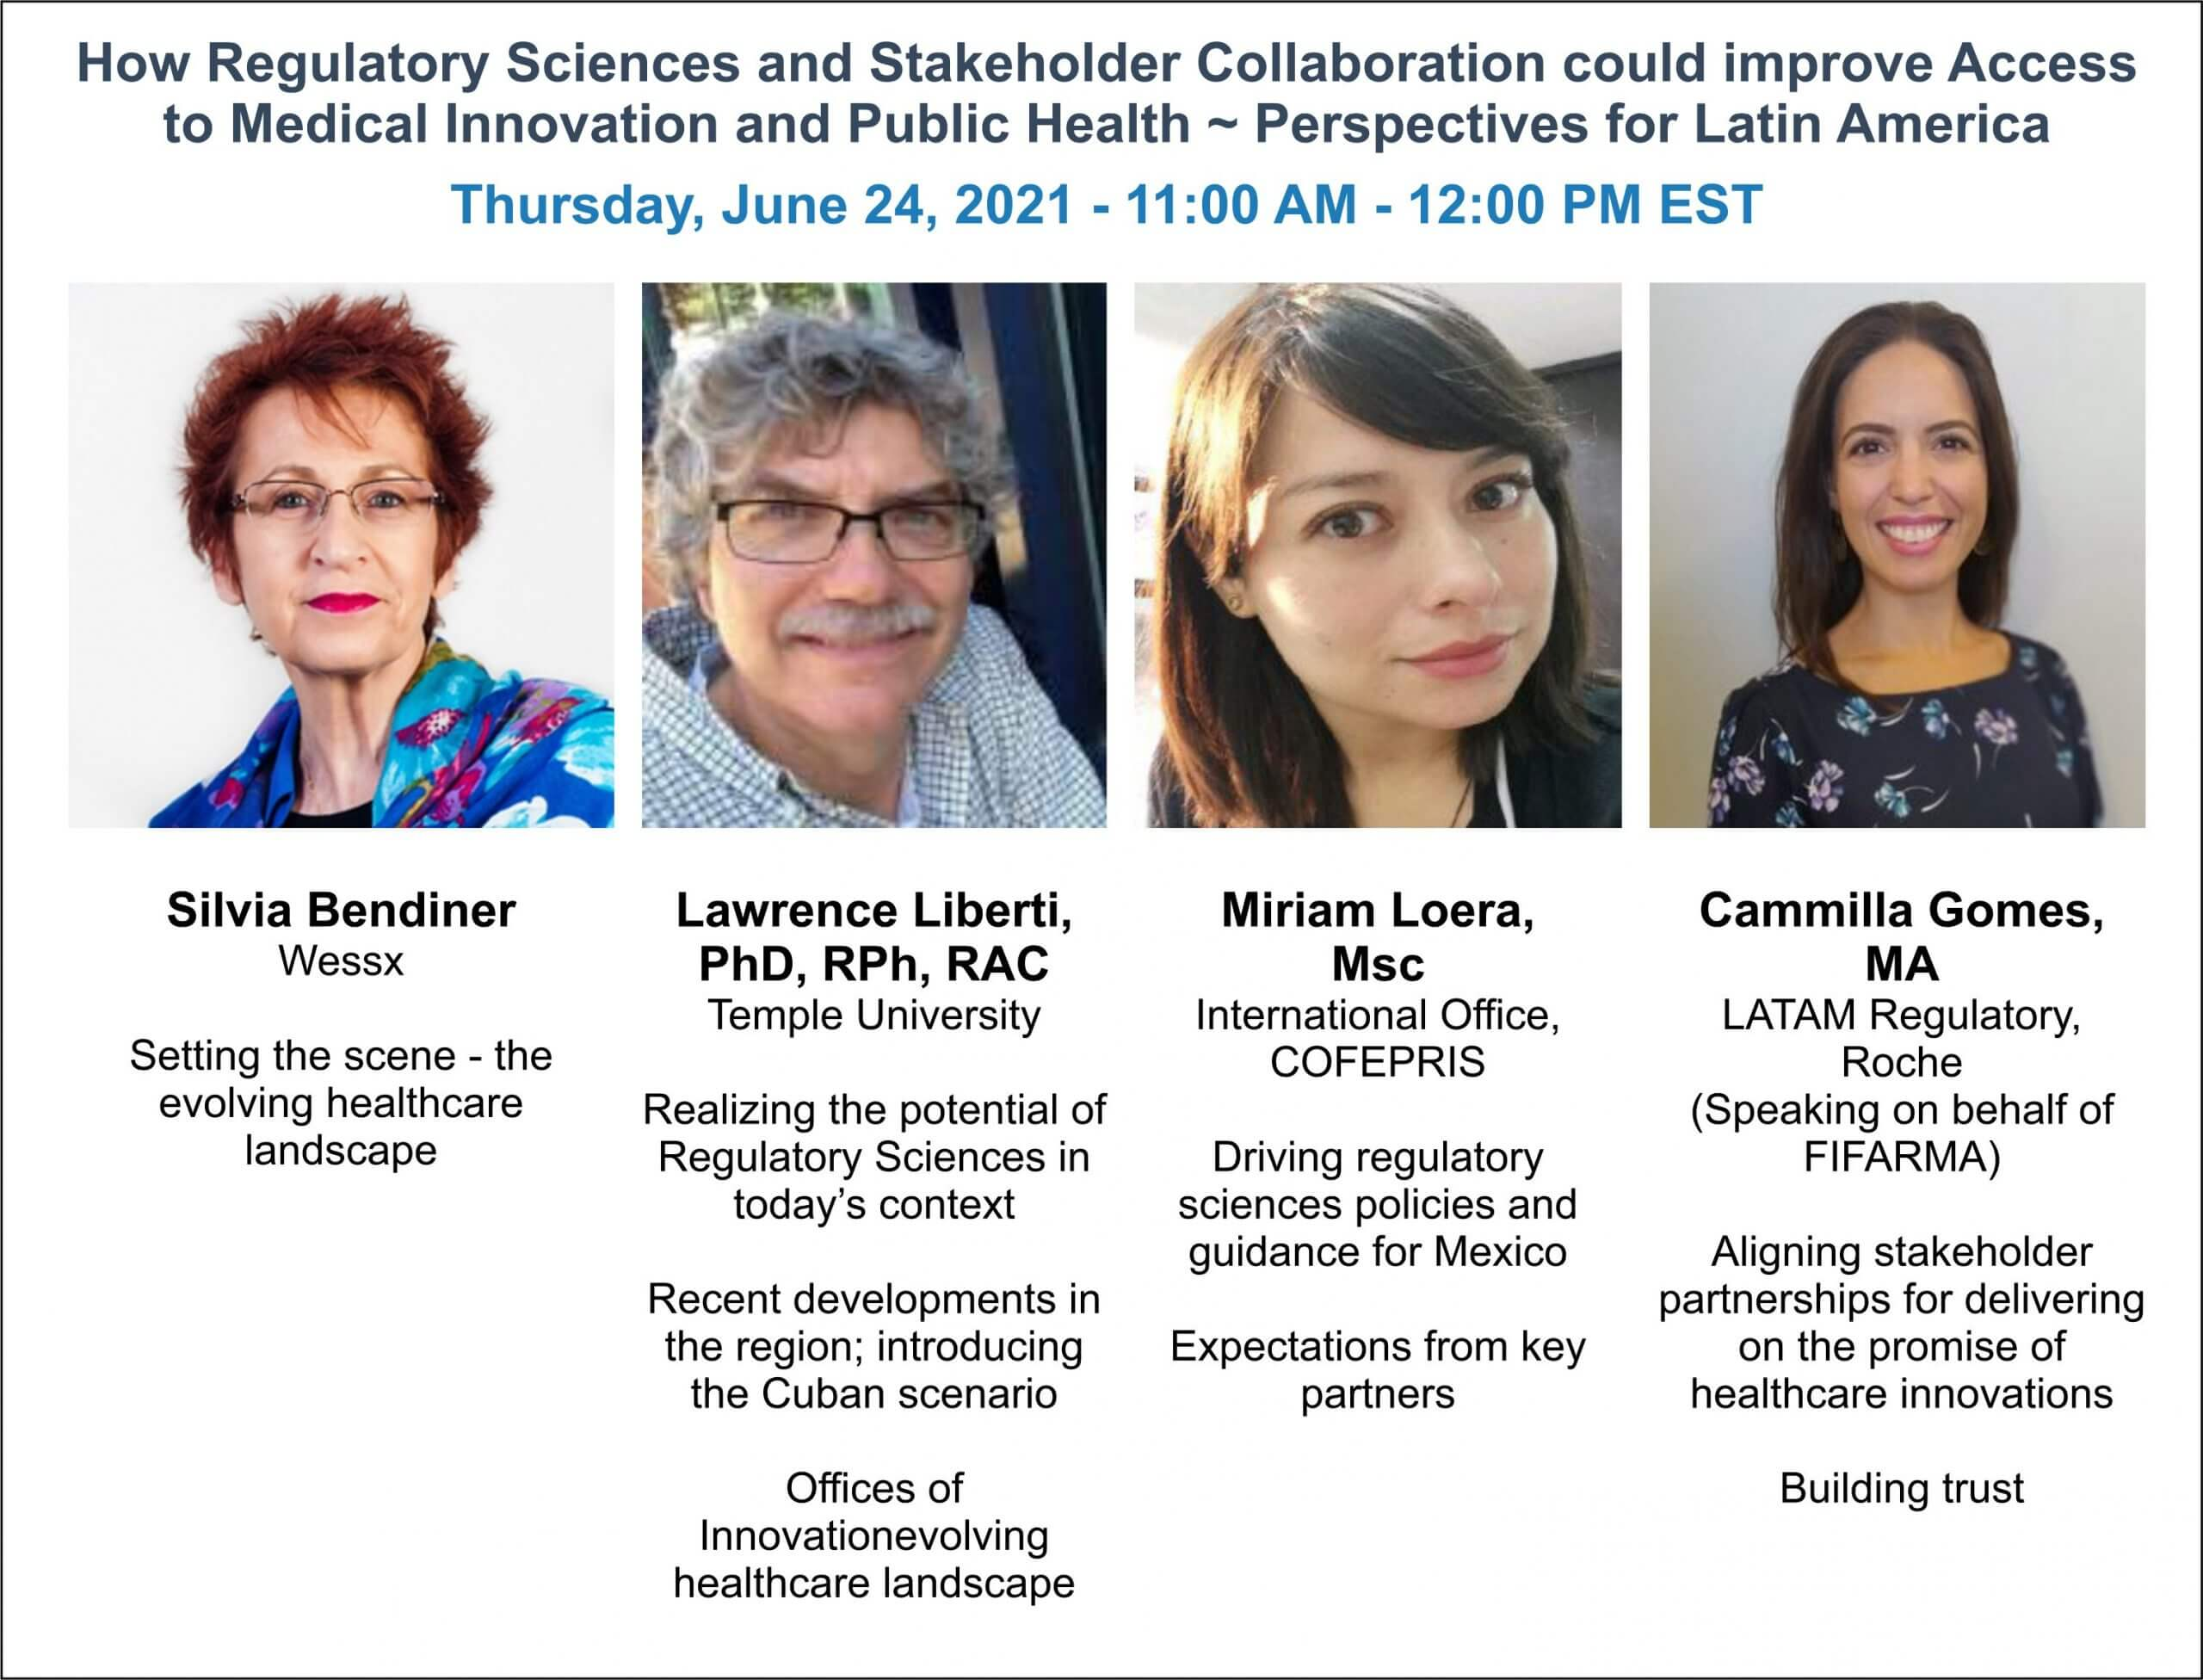 How Regulatory Sciences and Stakeholder Collaboration Could Improve Access to Medical Innovation and Public Health ~ Perspectives for Latin America